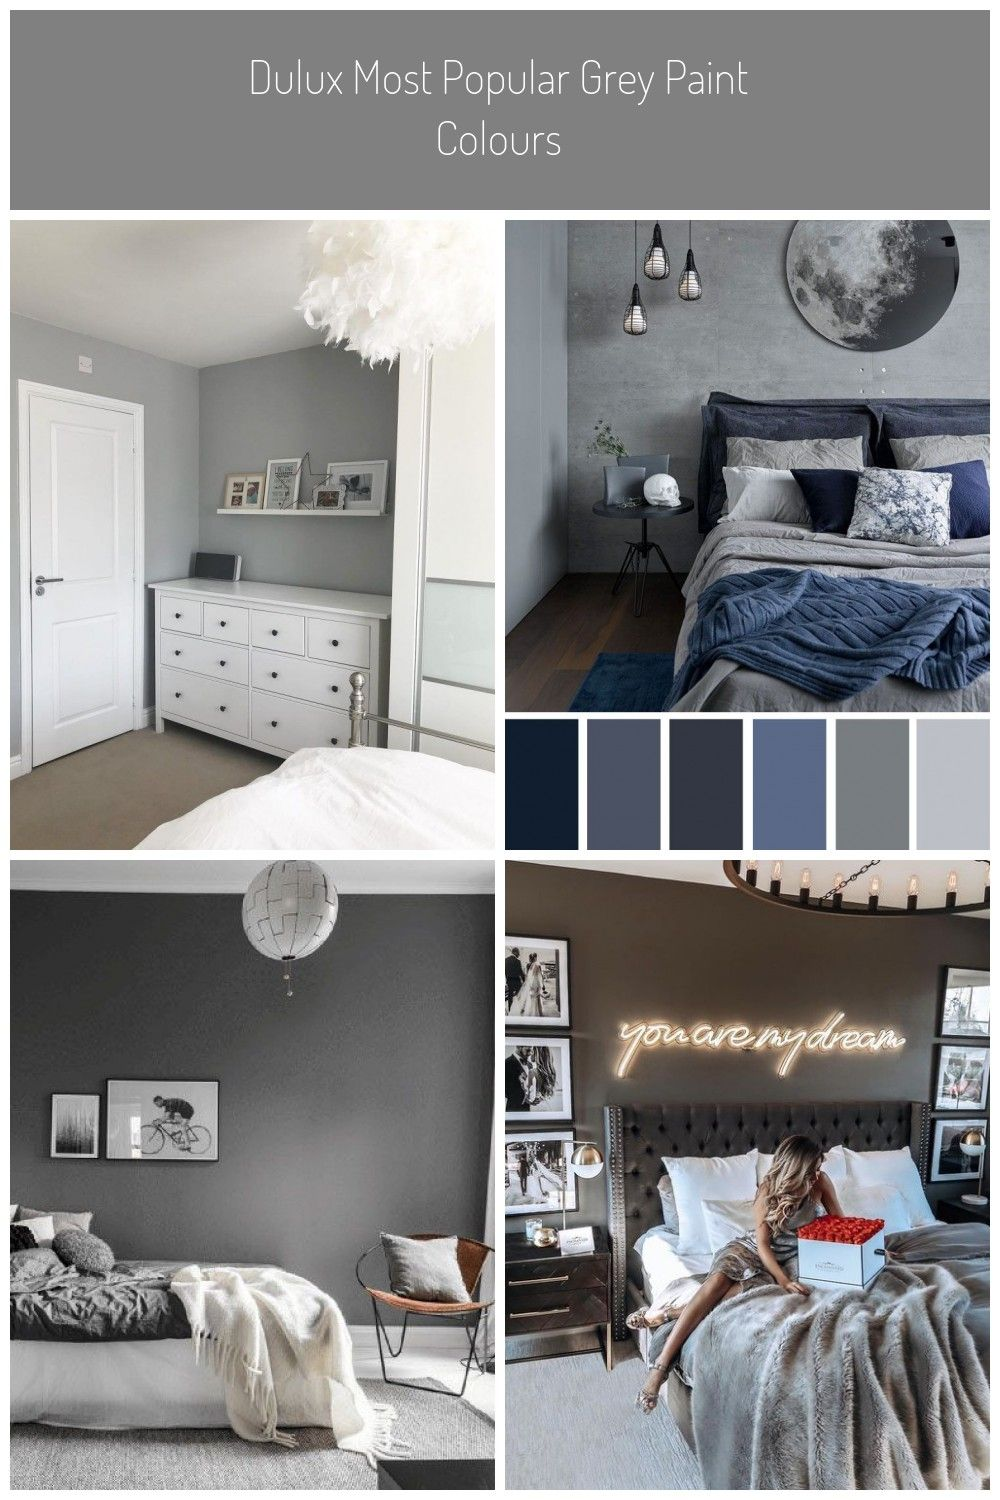 Dulux Most Popular Grey Paint Colours In 2020 Grey Bedroom Decor